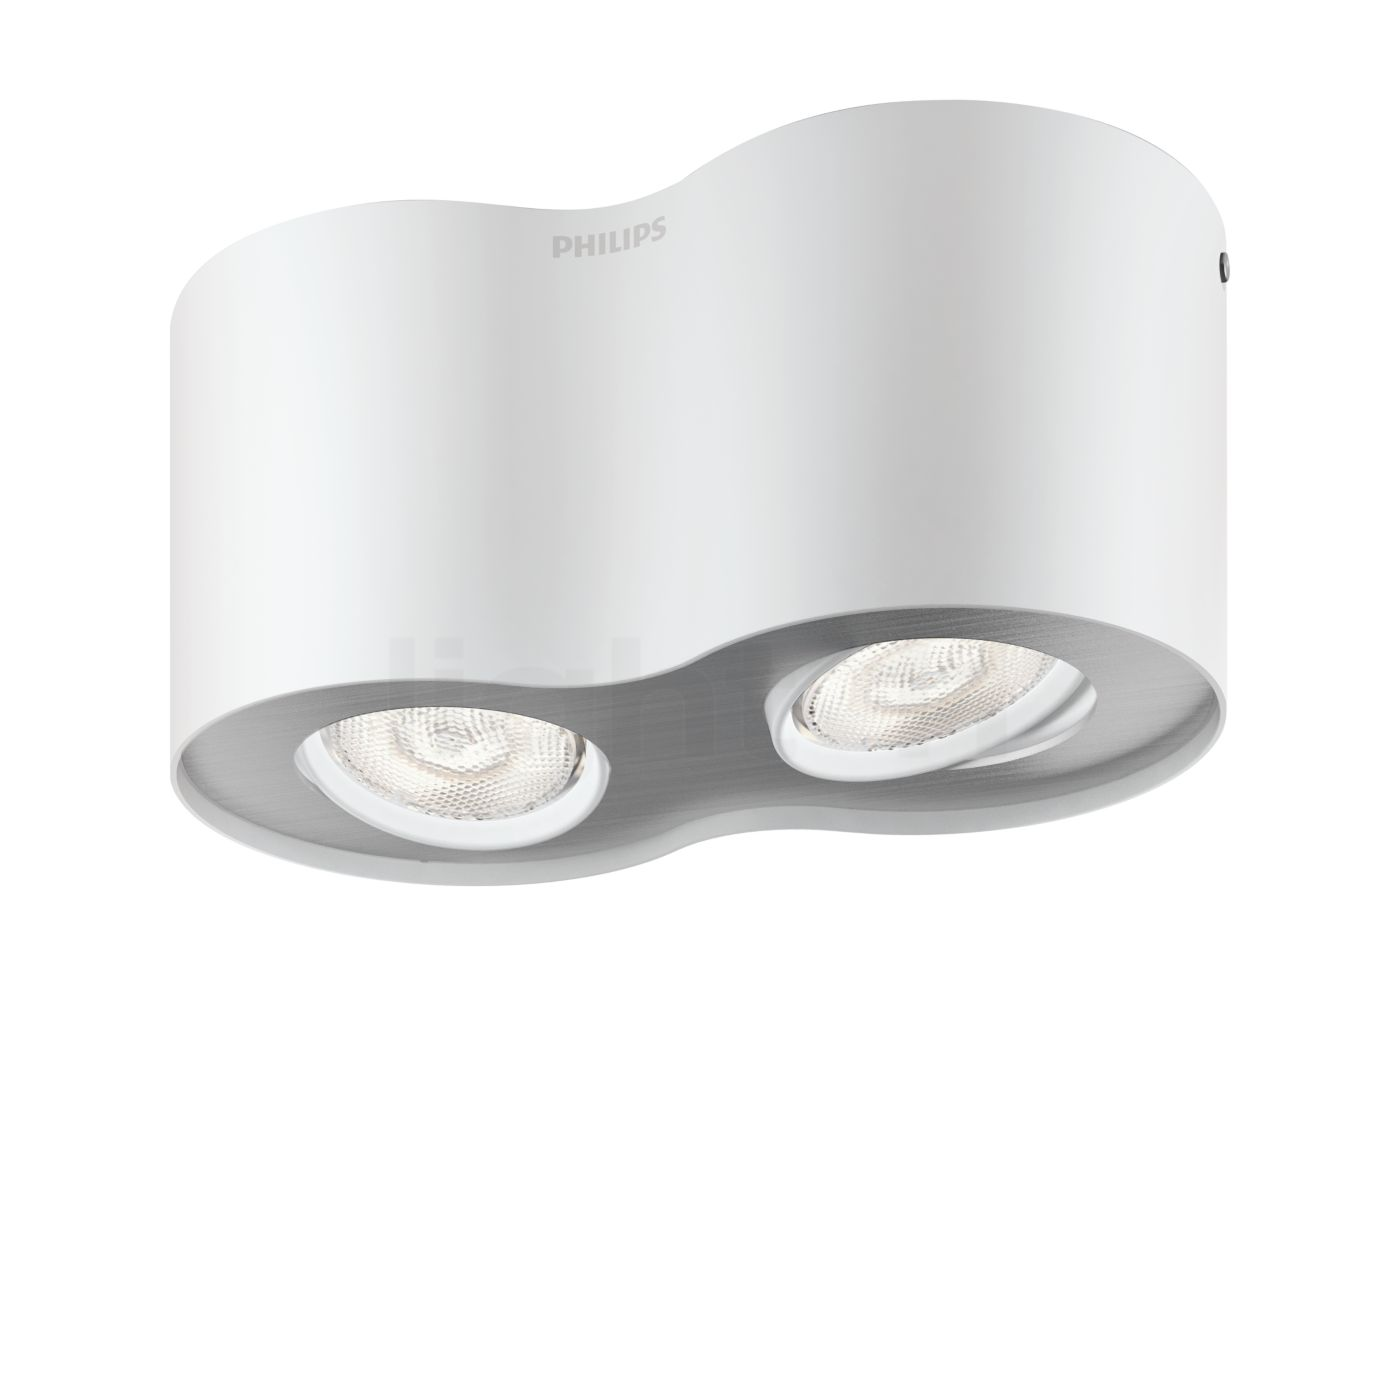 Philips myliving phase ceiling light led 2 lamps ceiling lights arubaitofo Image collections